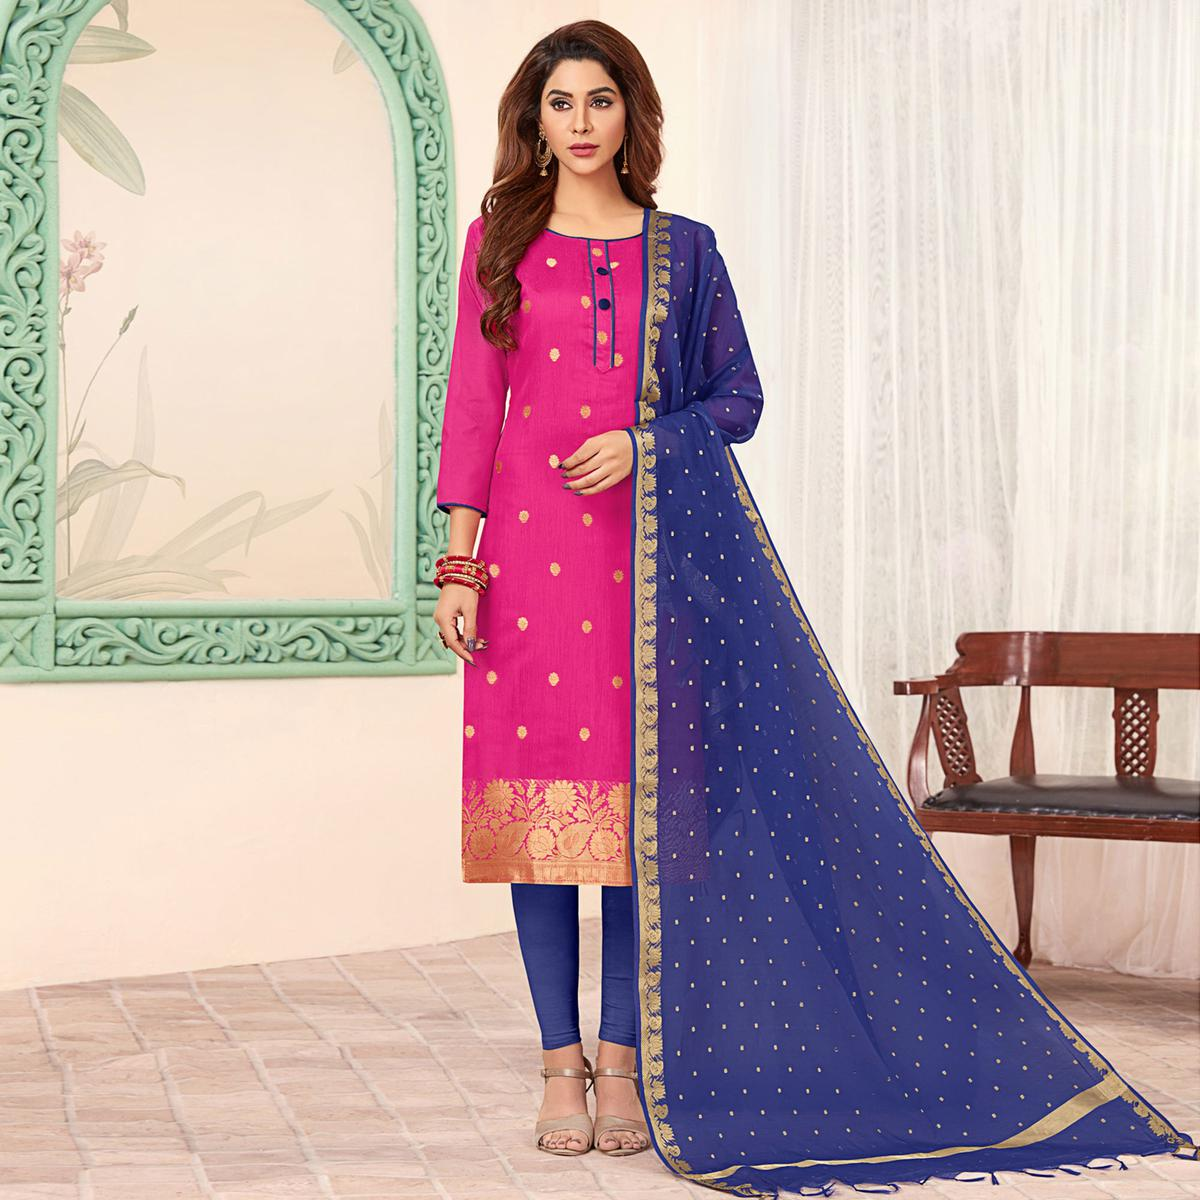 Gleaming Rani Pink Colored Festive Wear Woven Banarasi Silk Dress Material